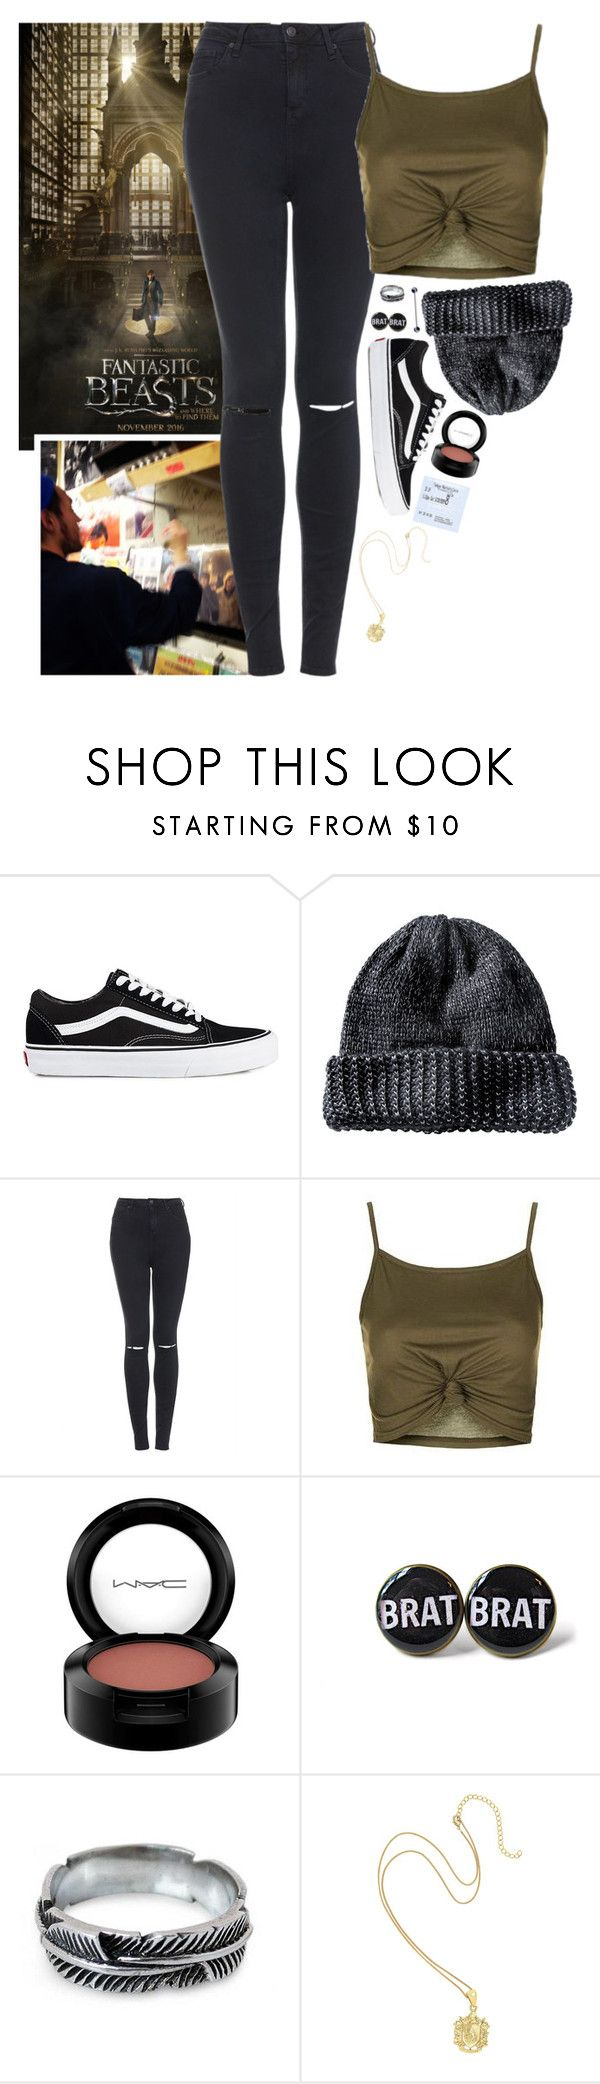 """""""Going to see Fantastic Beasts with Josh and Sunny on our day off in Frankfurt, Germany! 